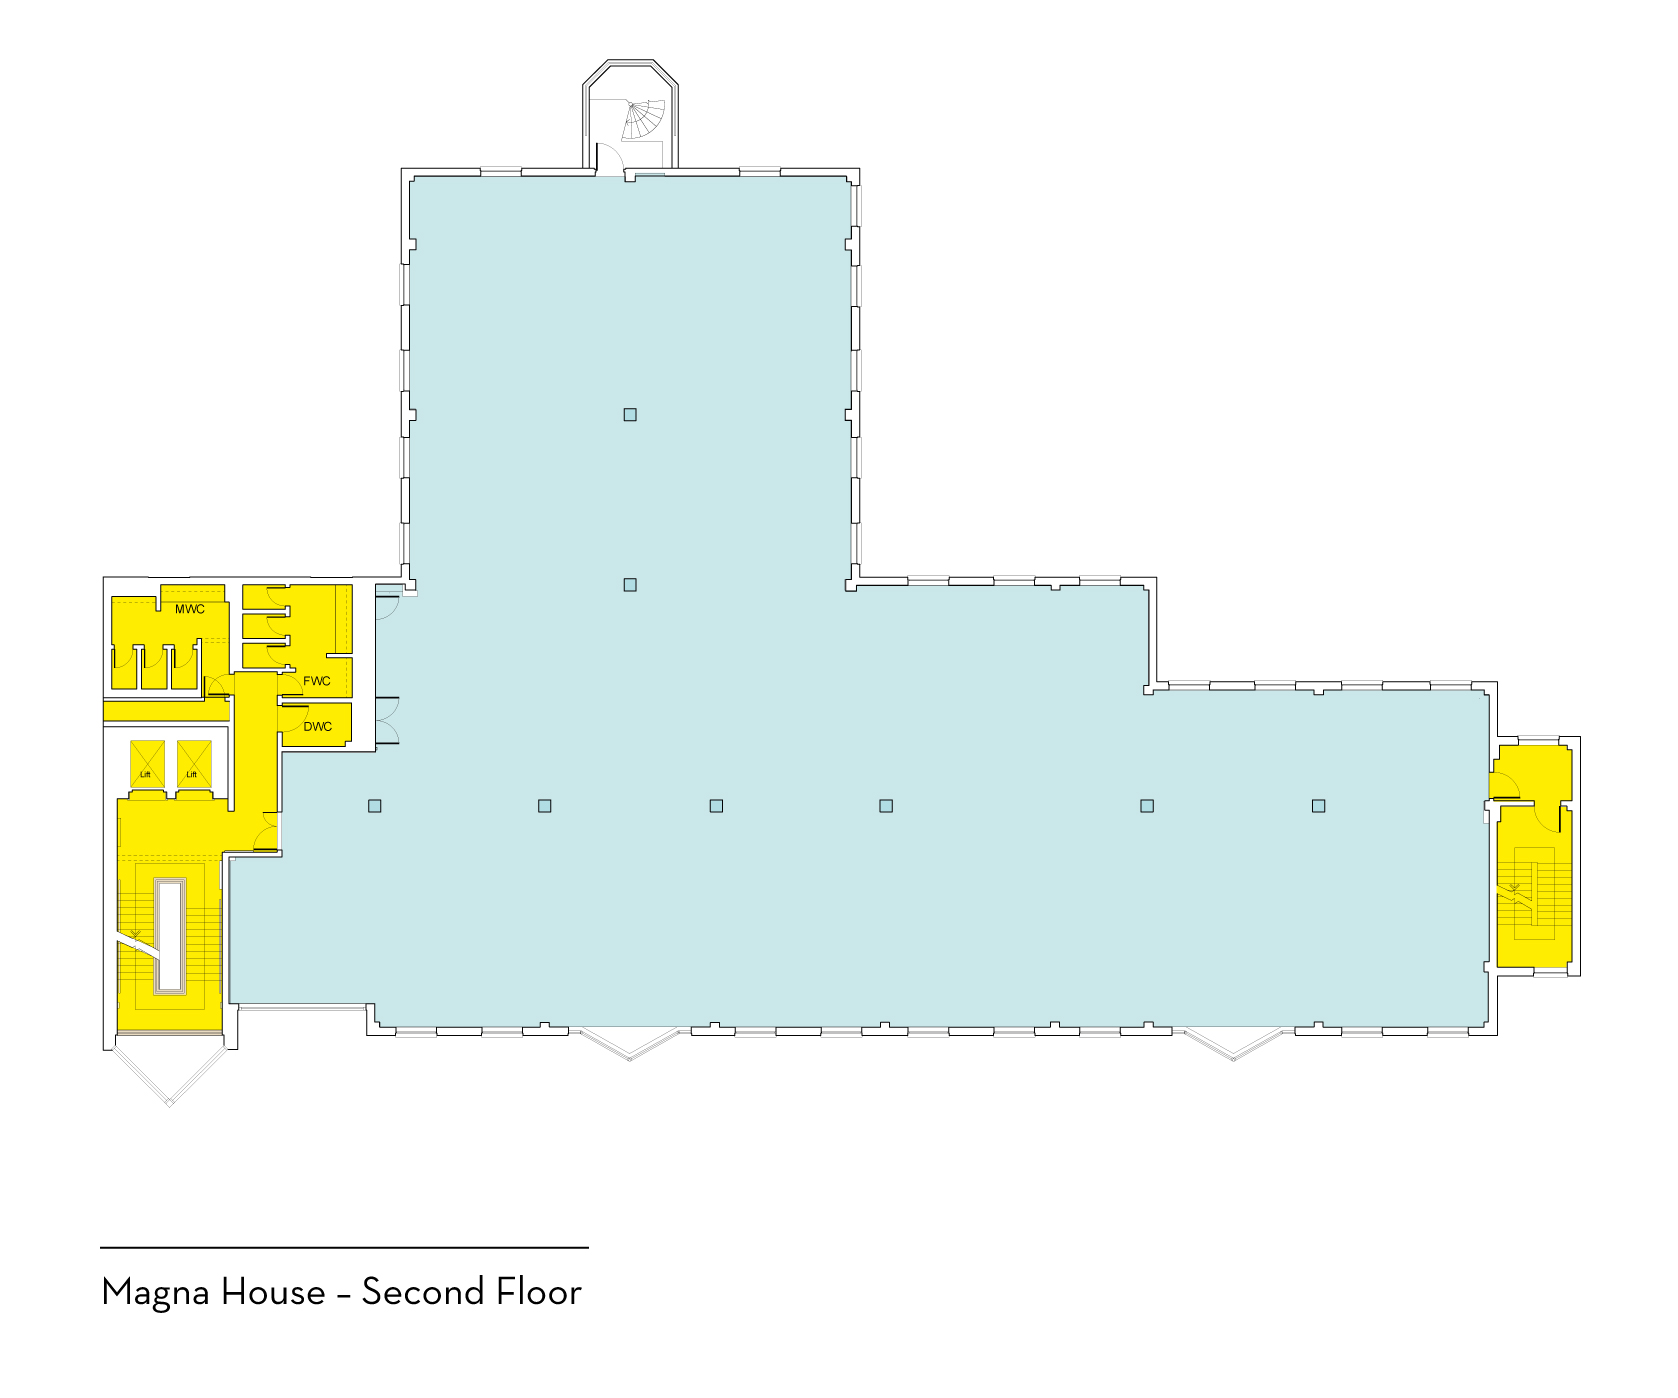 Magna House Second Floor Plan